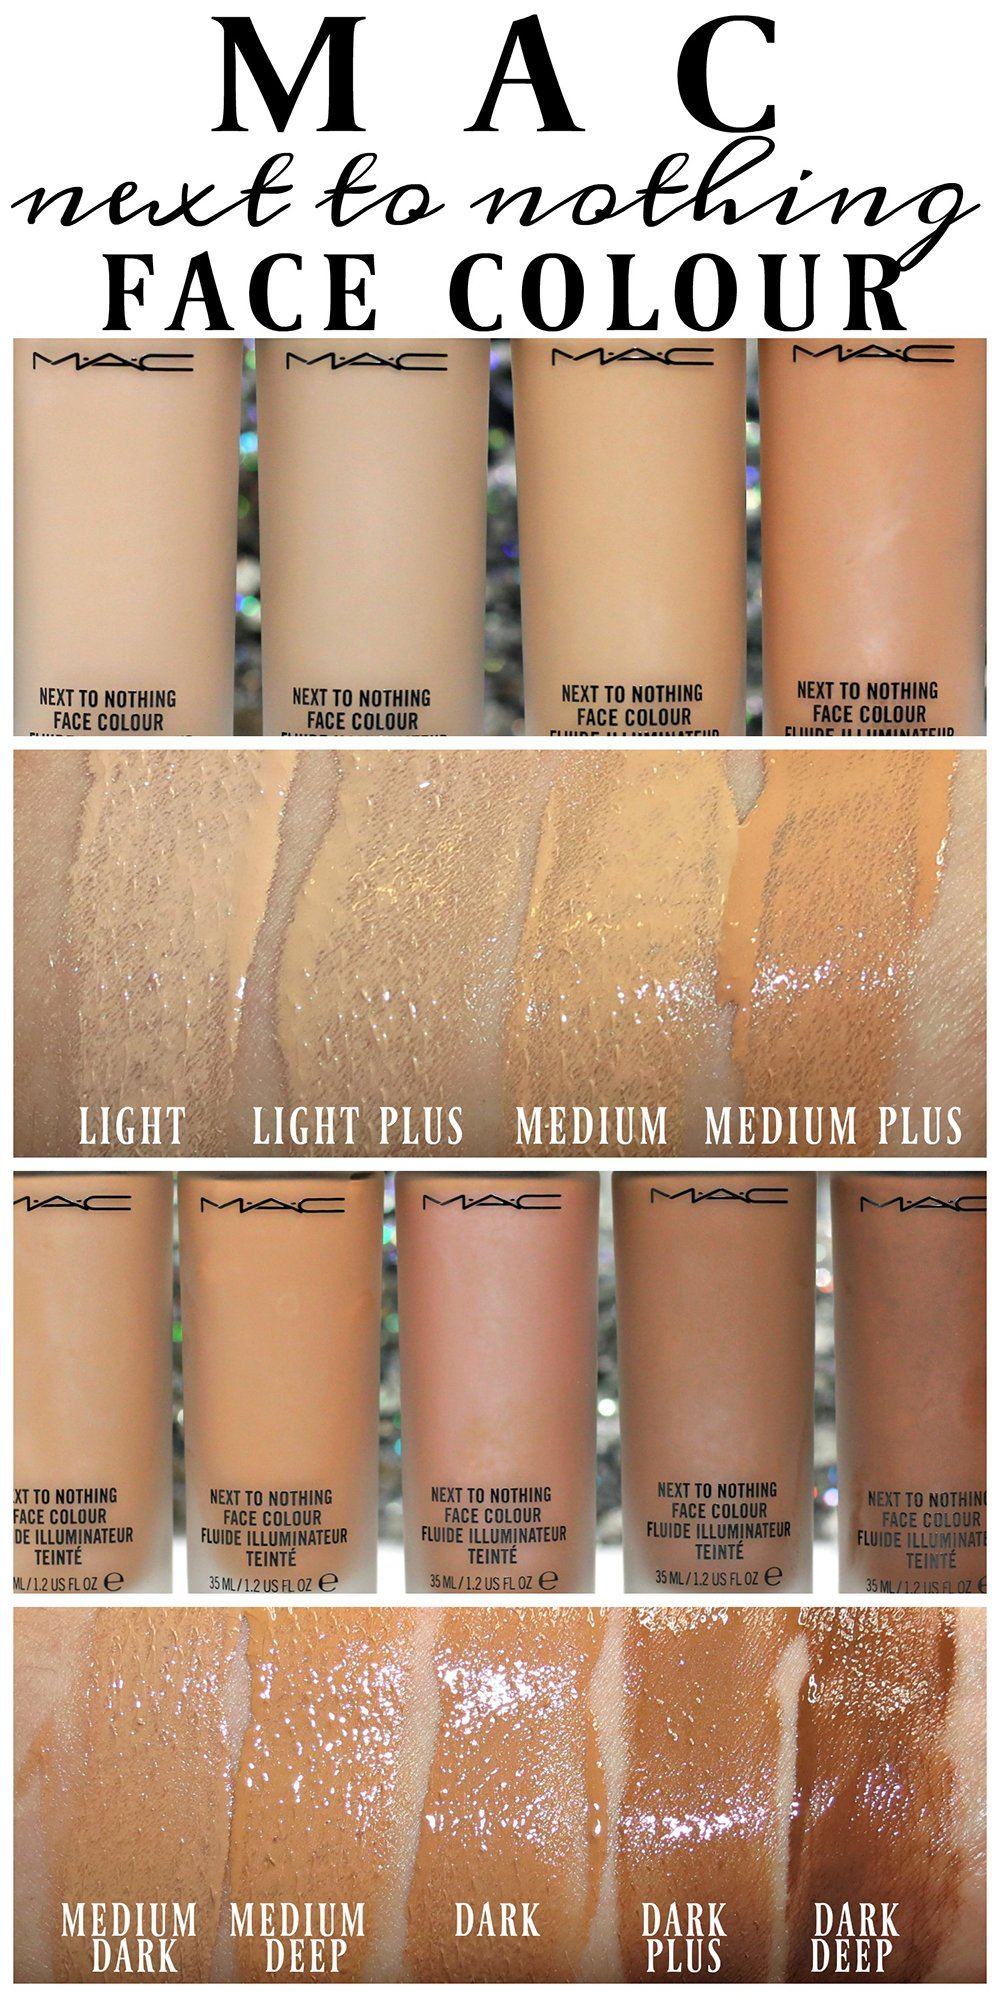 Mac Next To Nothing Face Colour Color Foundation Tint Swatches